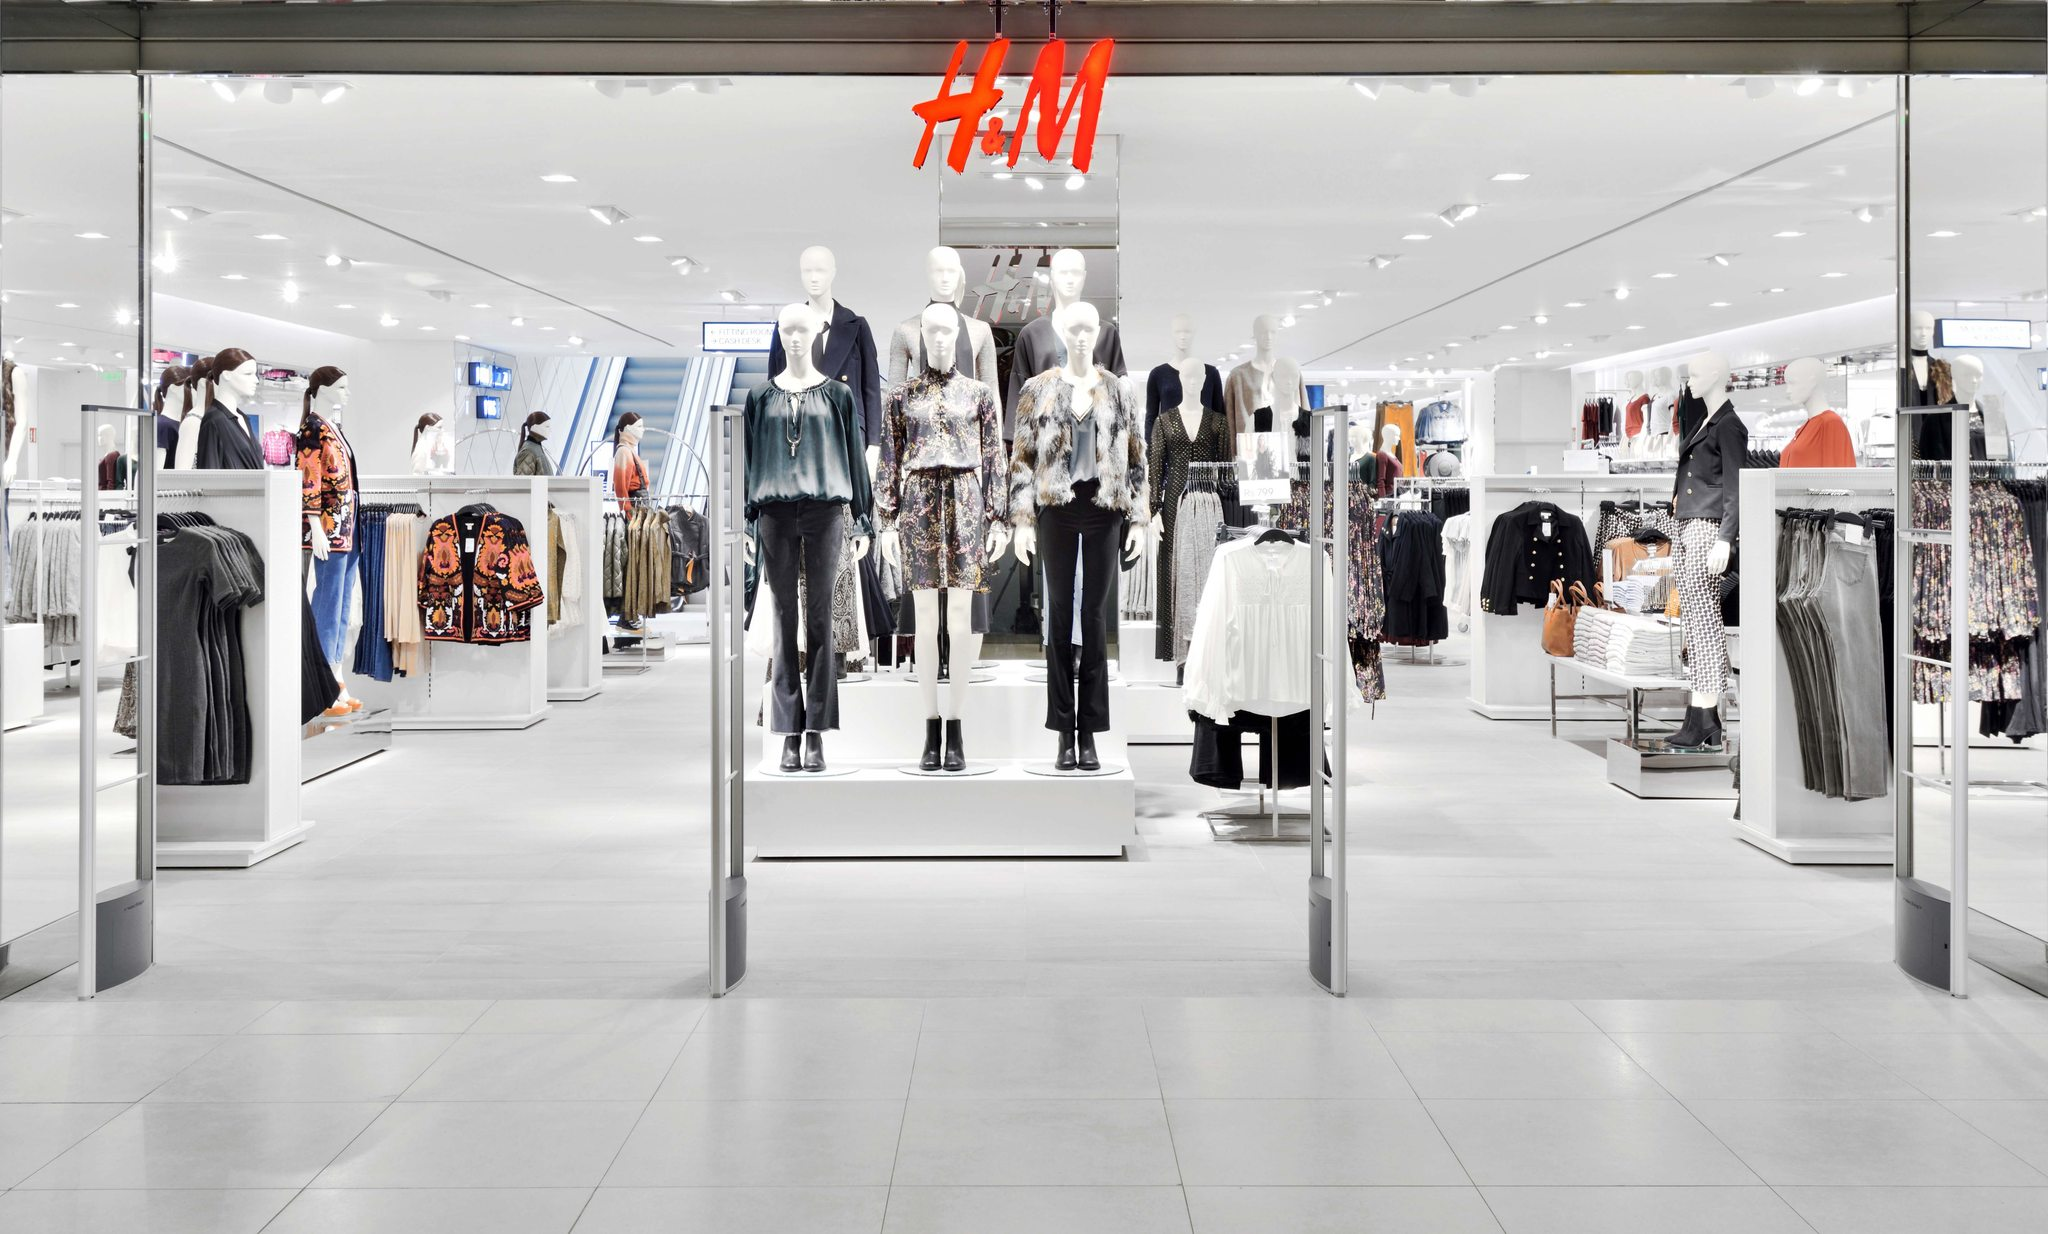 H&M Have Announce Their Biggest Drop In Profit For 6 Years